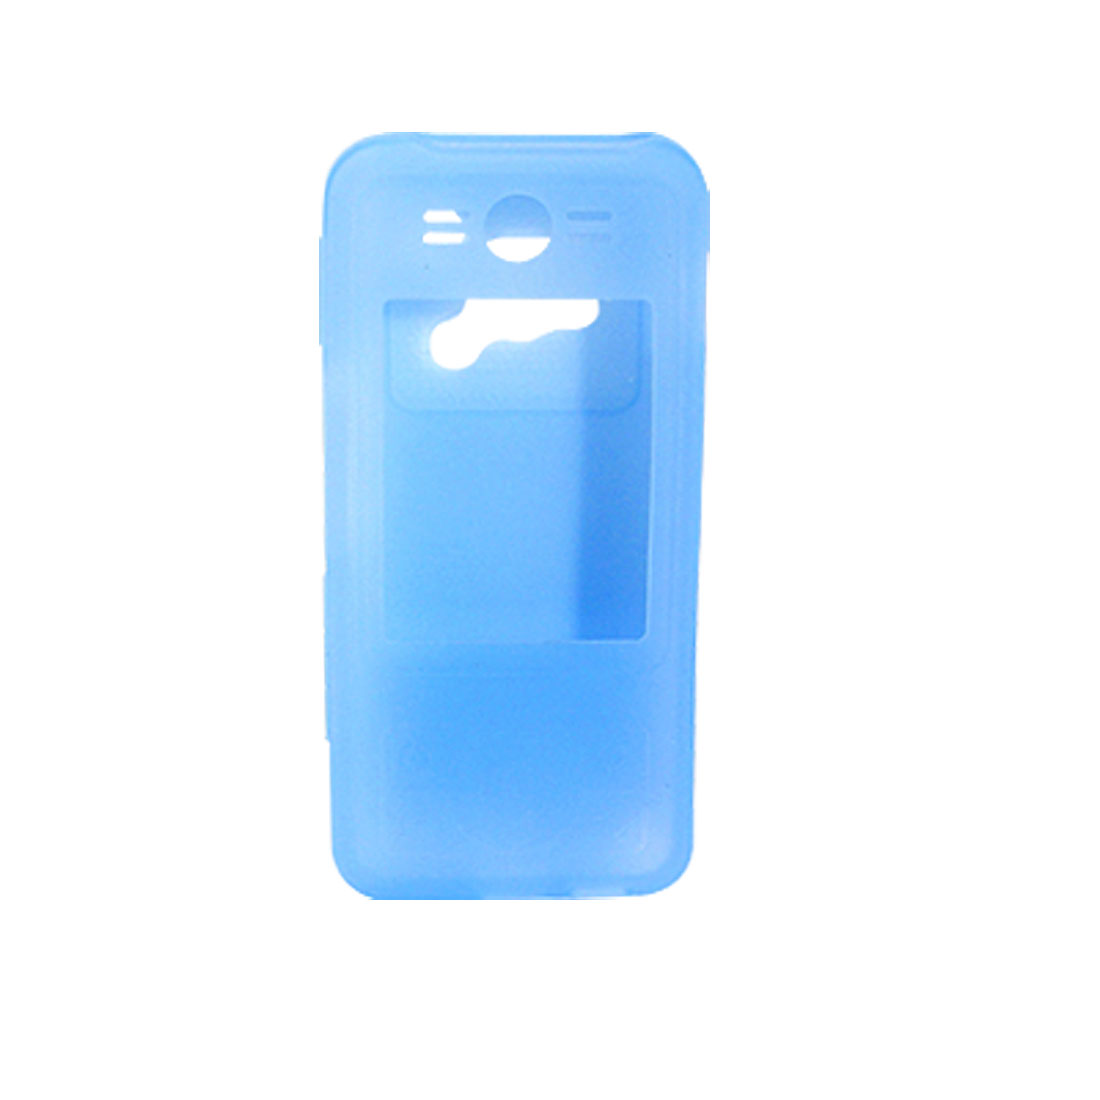 Mobile Phone Silicone Skin Case for Motorola E6 690 - Light Blue